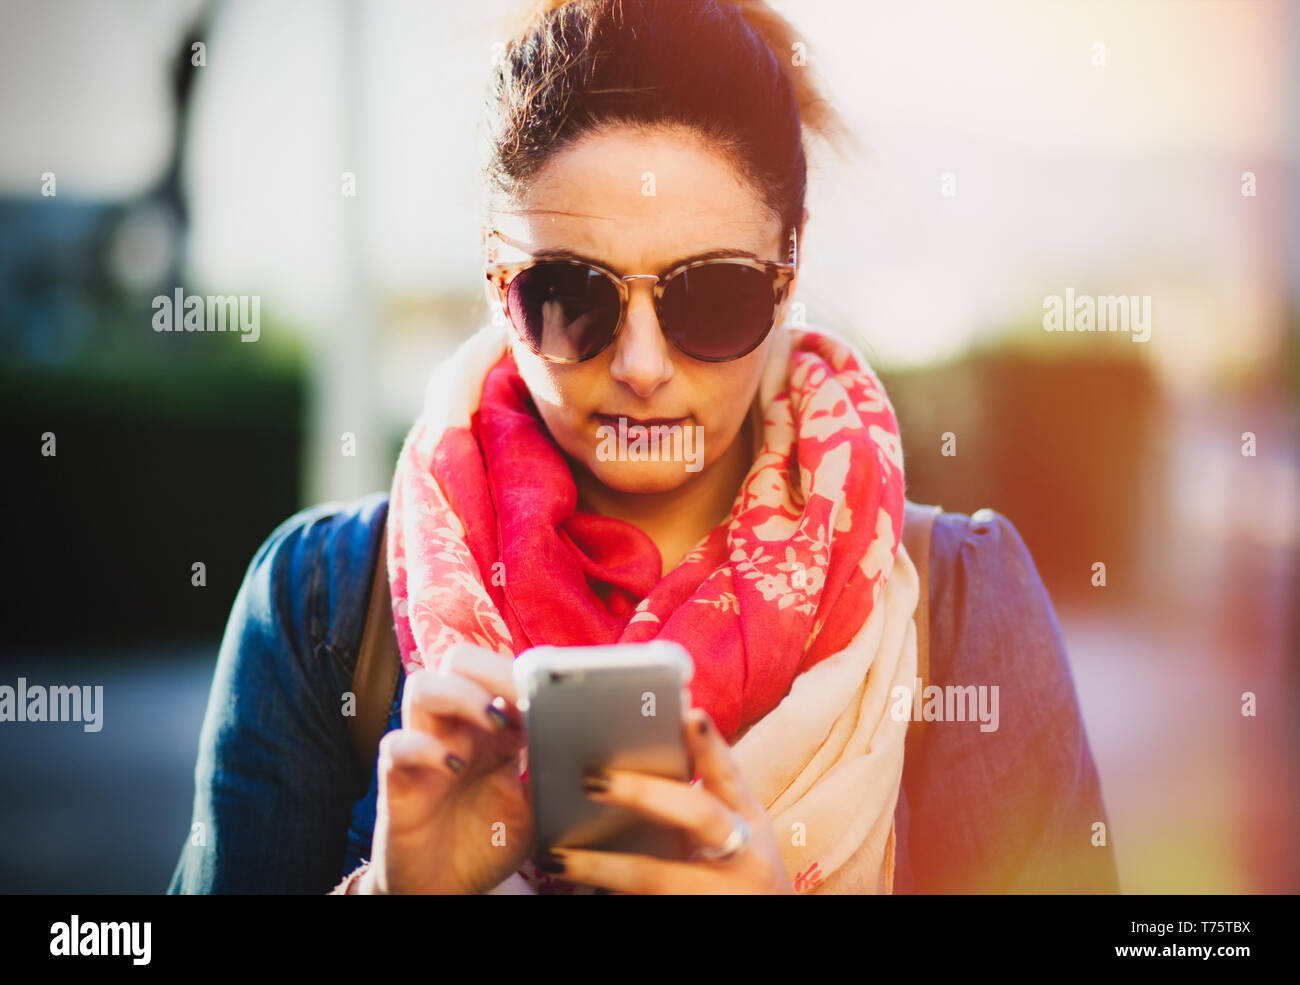 Young woman using mobile phone outdoors in spring. - Stock Image